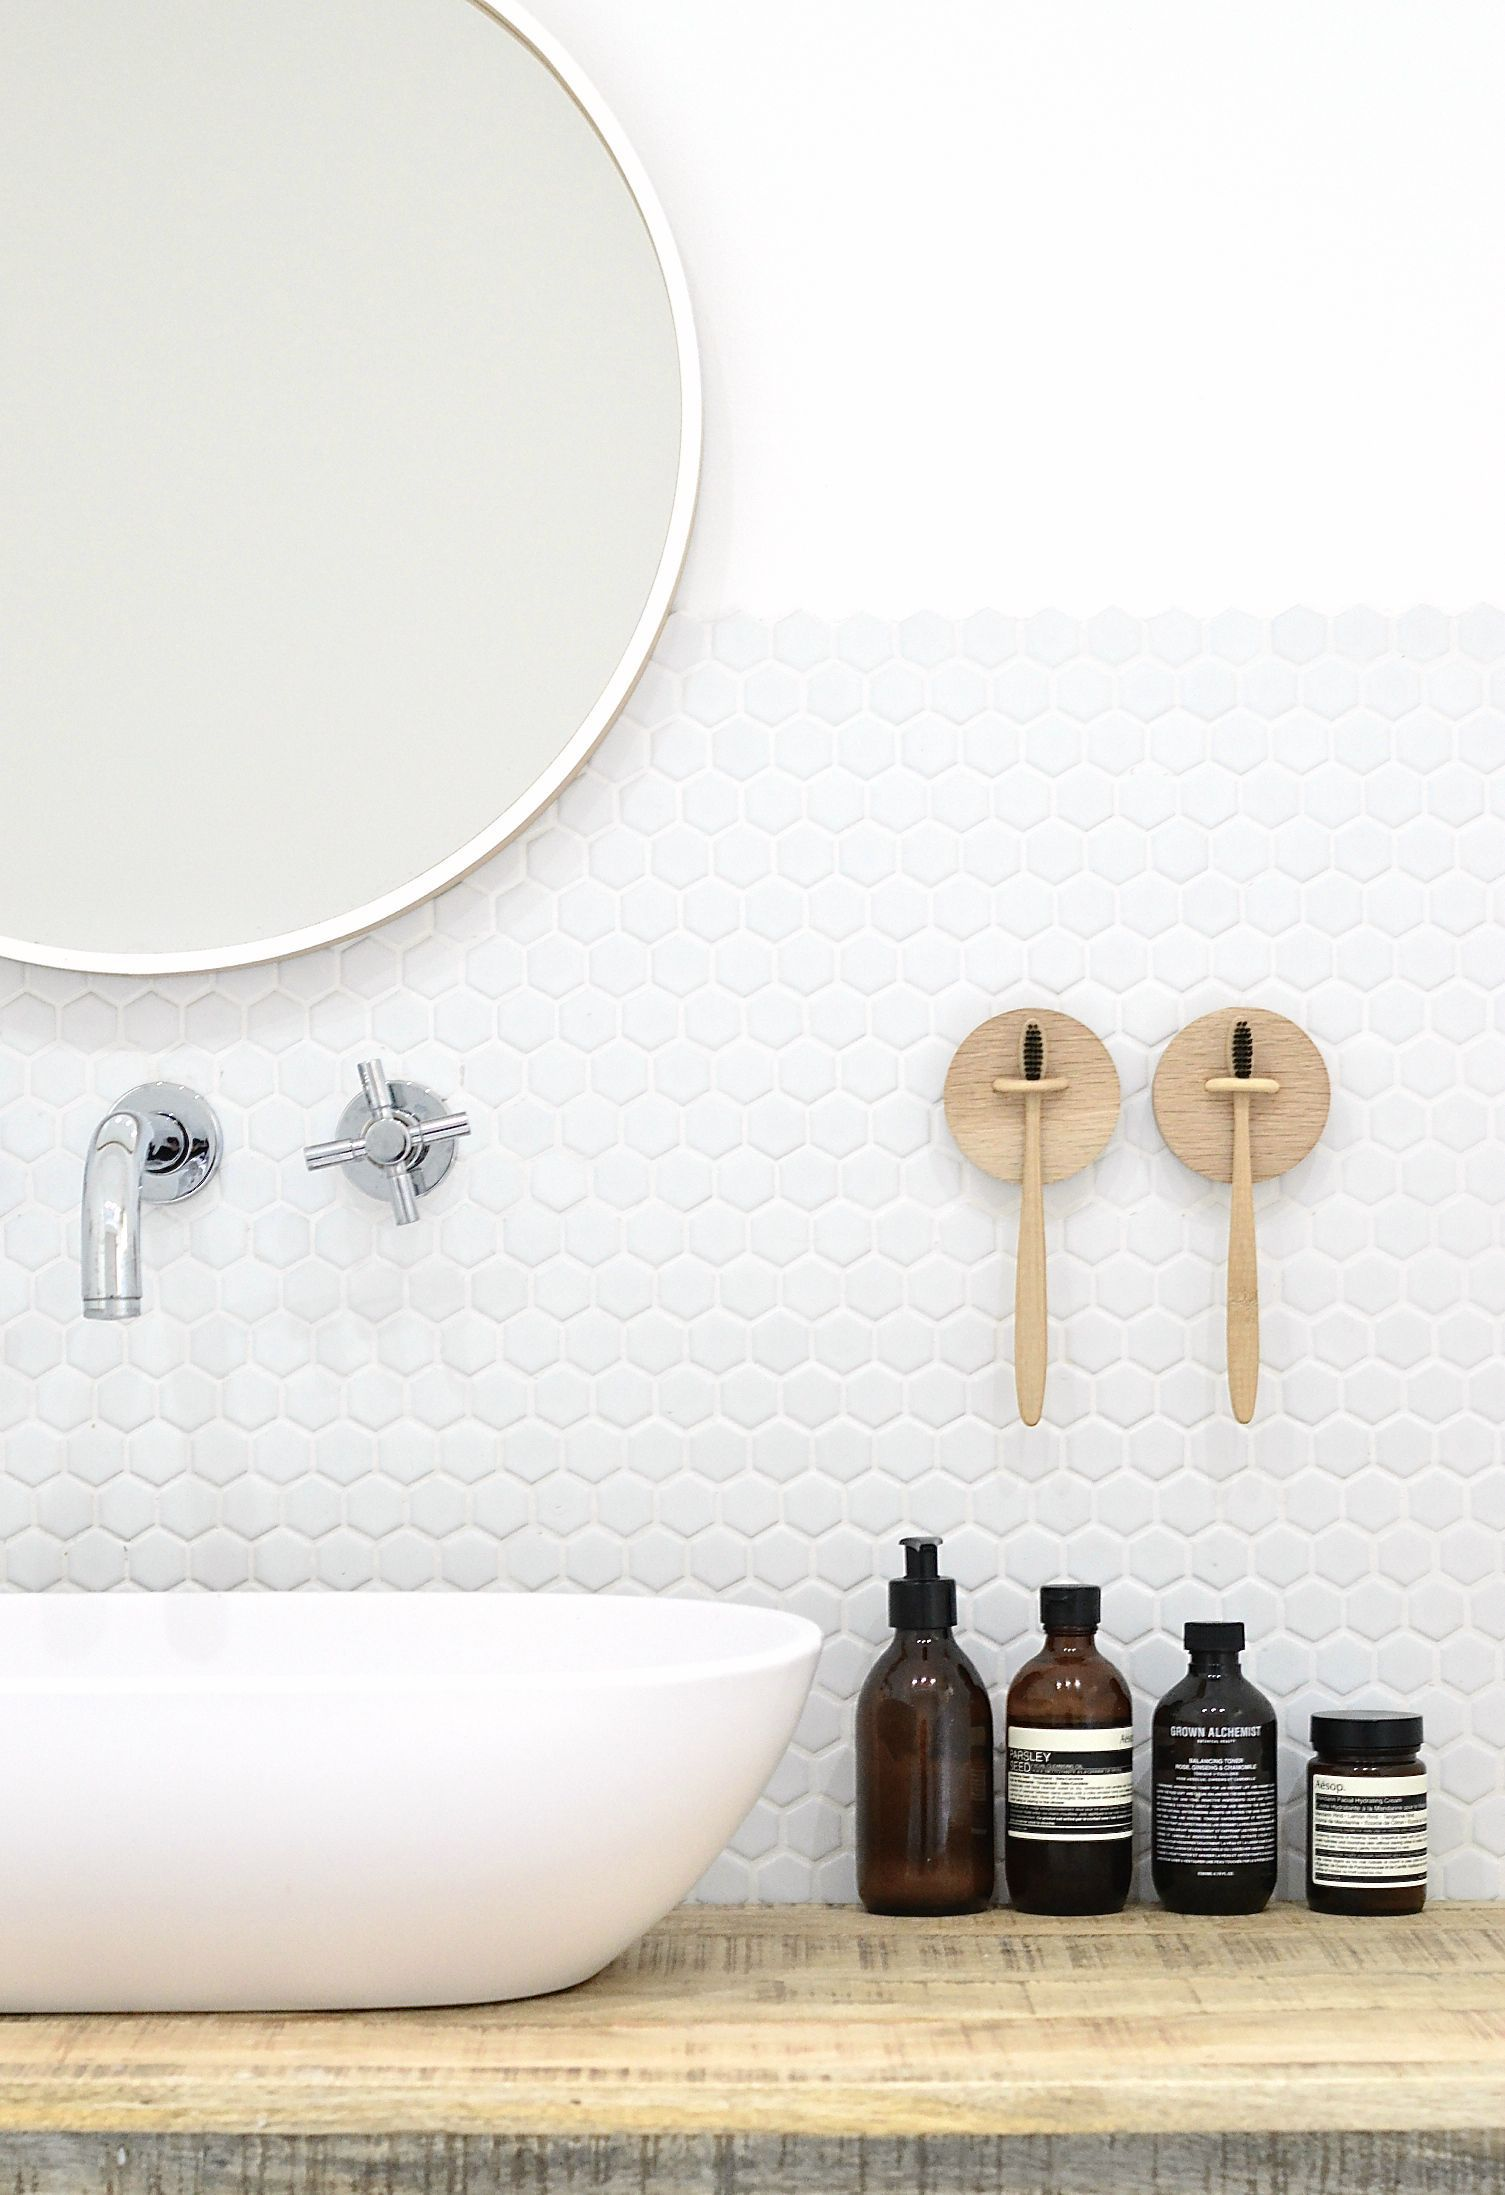 DIY wall mounted toothbrush holder | Wall mounted ... on Decorative Sconces Don't Need Electric Toothbrush id=94787